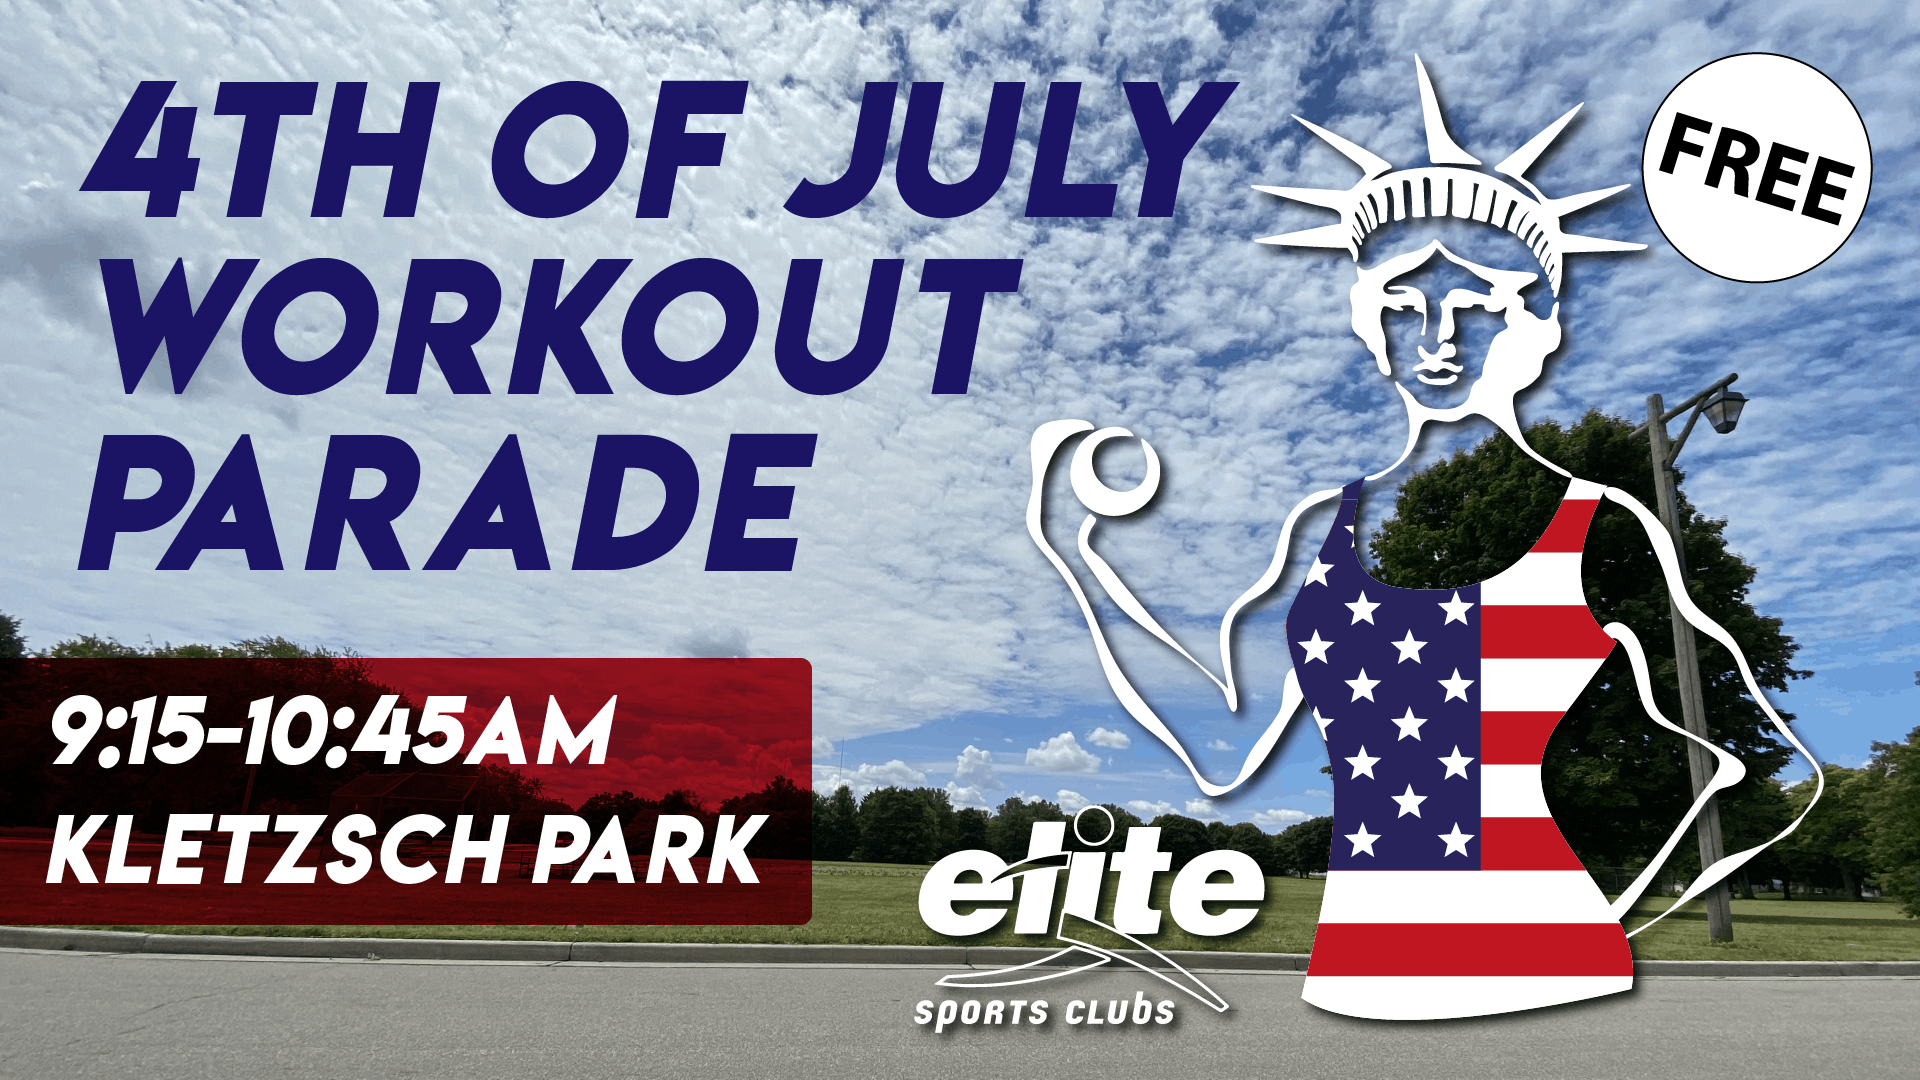 4th of July Workout Parade at Elite Sports Clubs